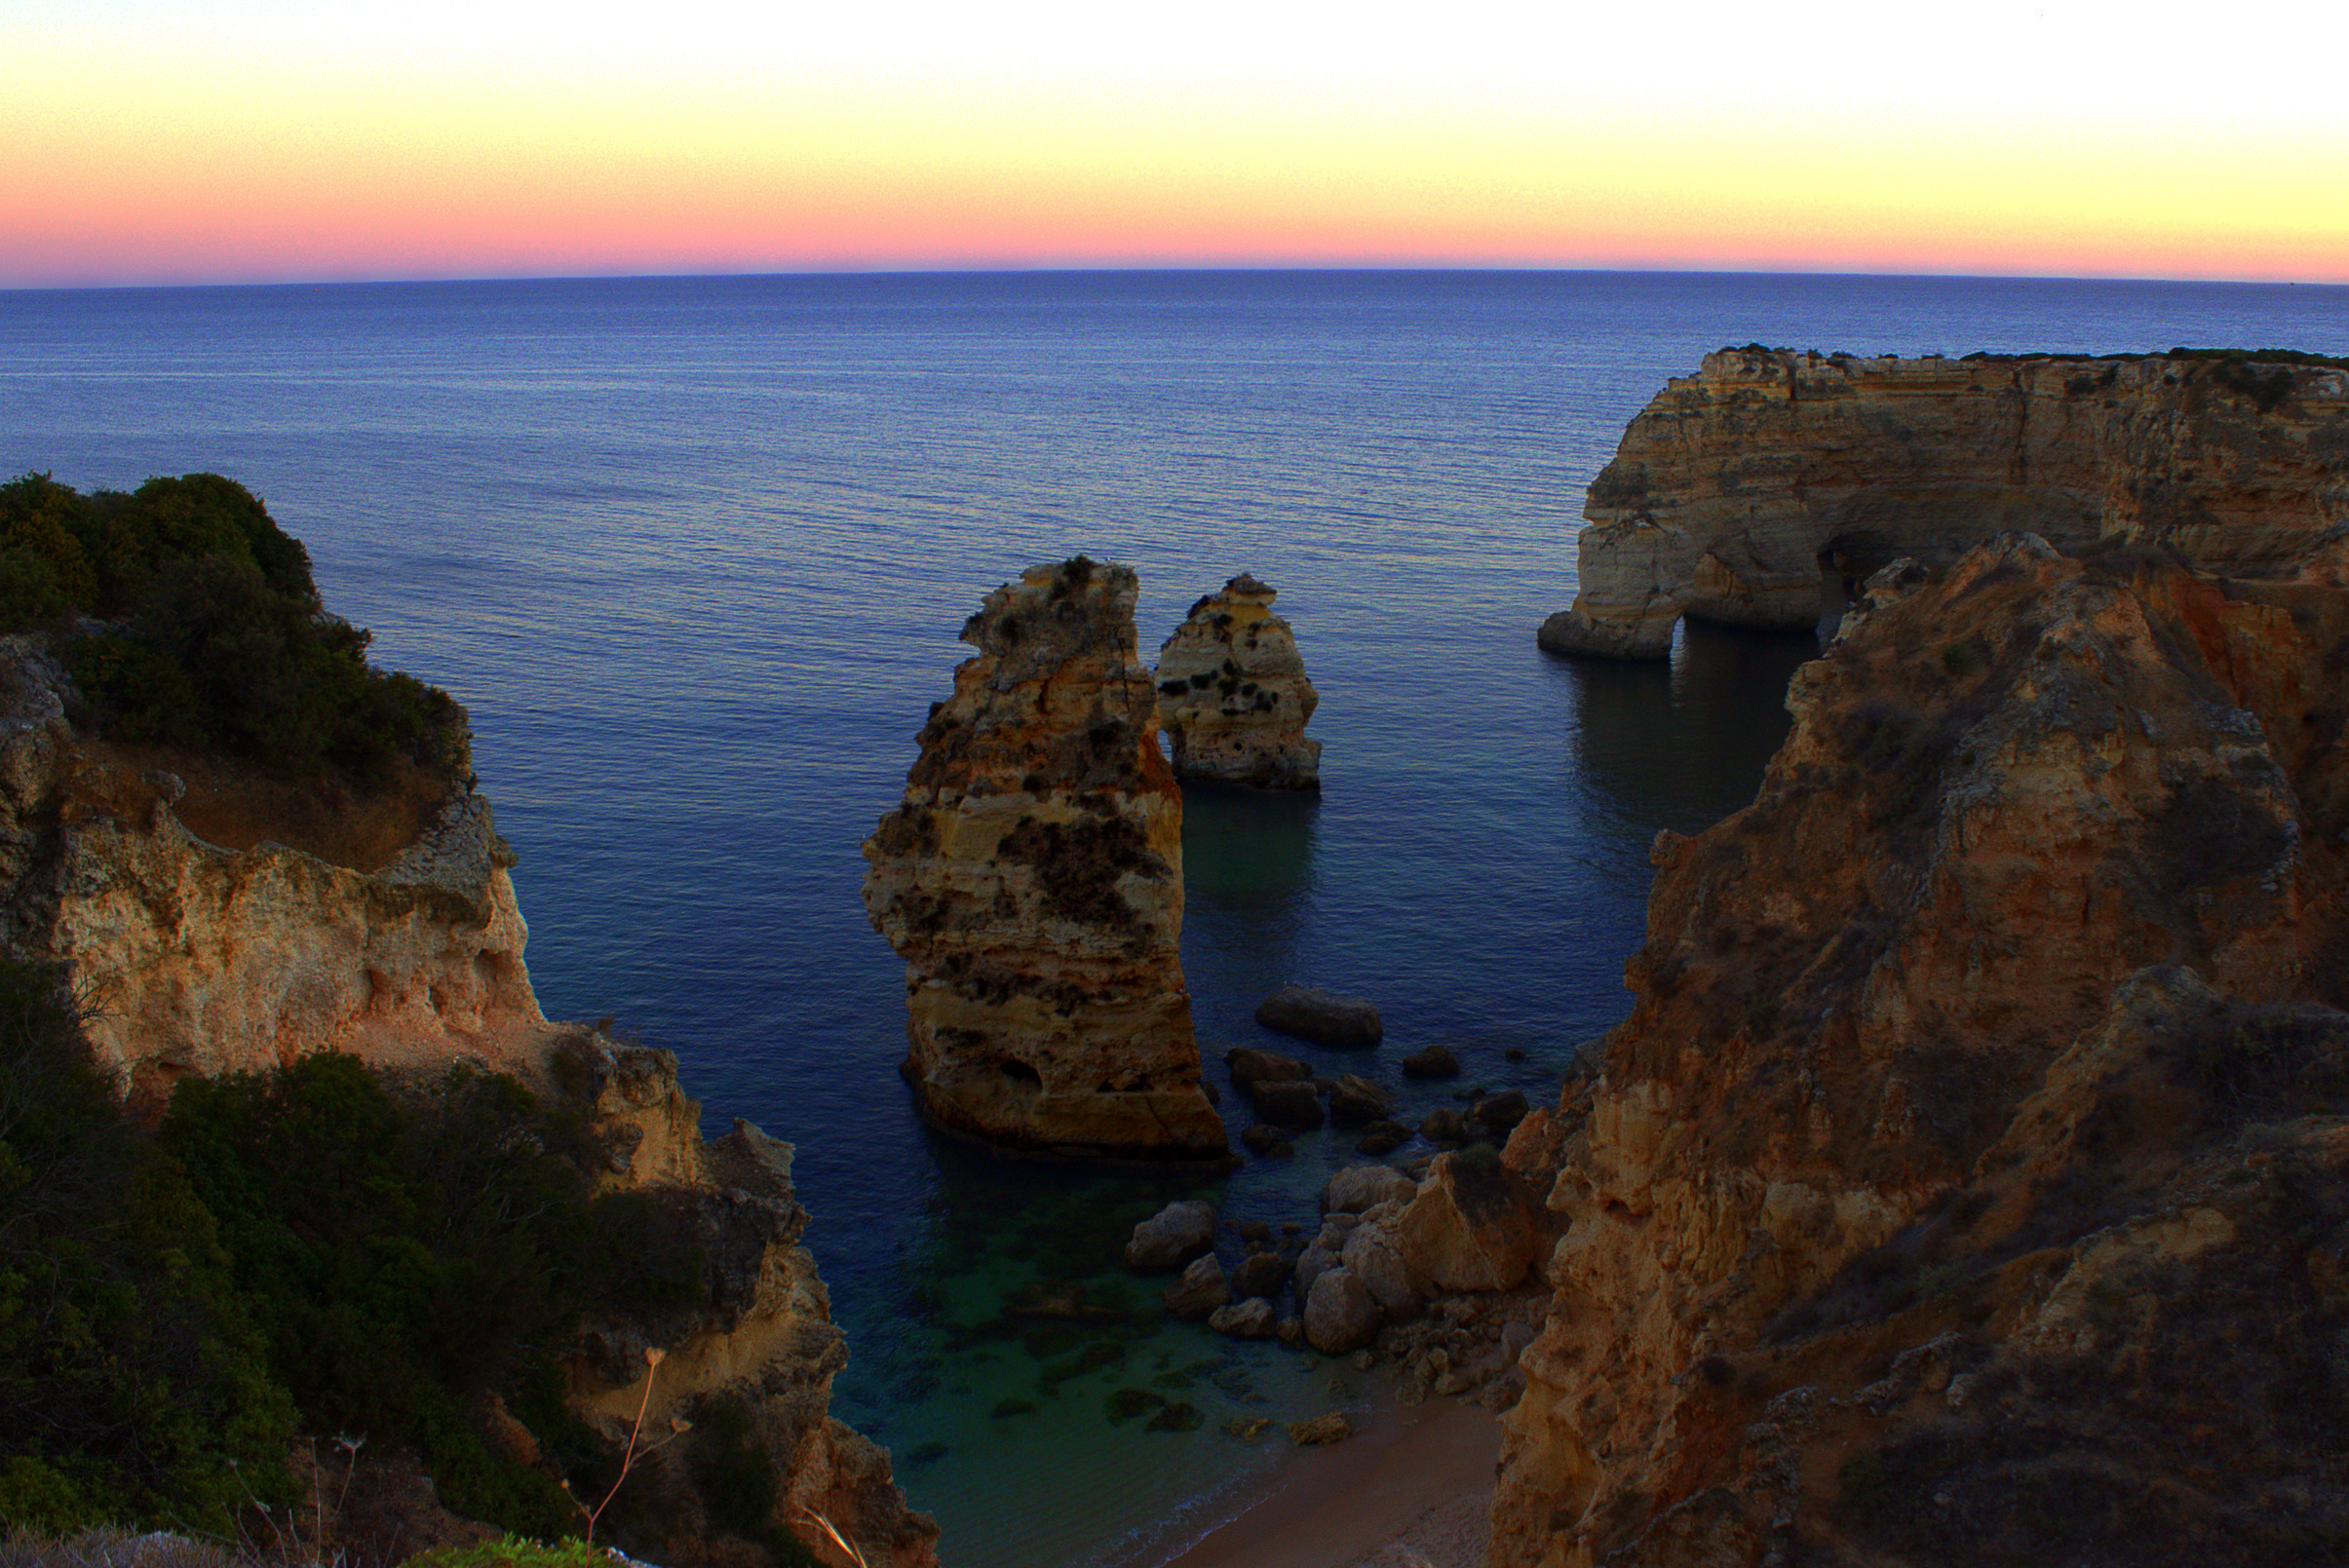 Sea stacks and sandstone cliffs at dusk photo